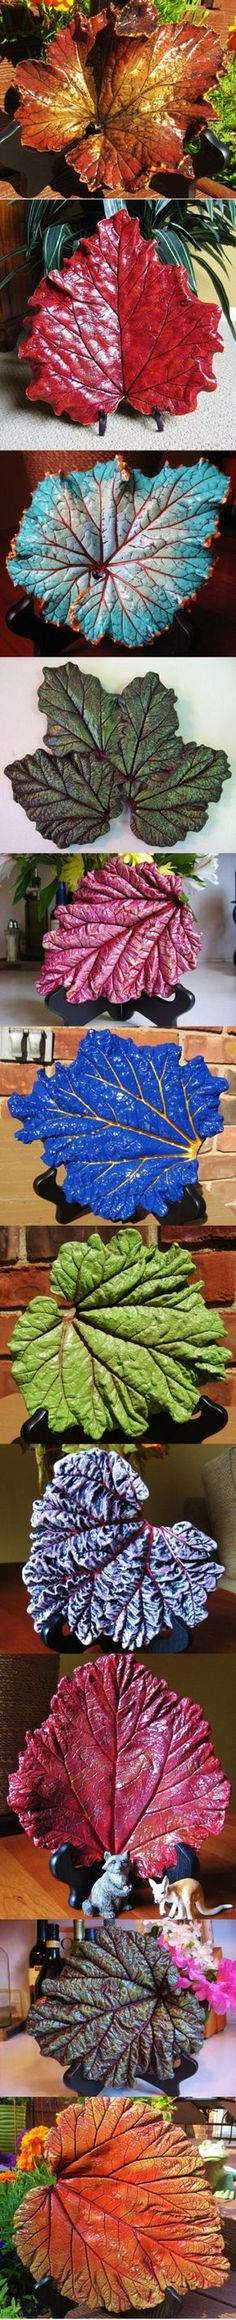 Are you interested in art? Do you like to hang your own made art pieces on the wall? If your answers are yes, then you should definitely check out these amazing looking leaf decorations for you home.You will be surprisedhow easy it is to do it You will be surprisedhow easy it is to do it when you discover the .... Read More